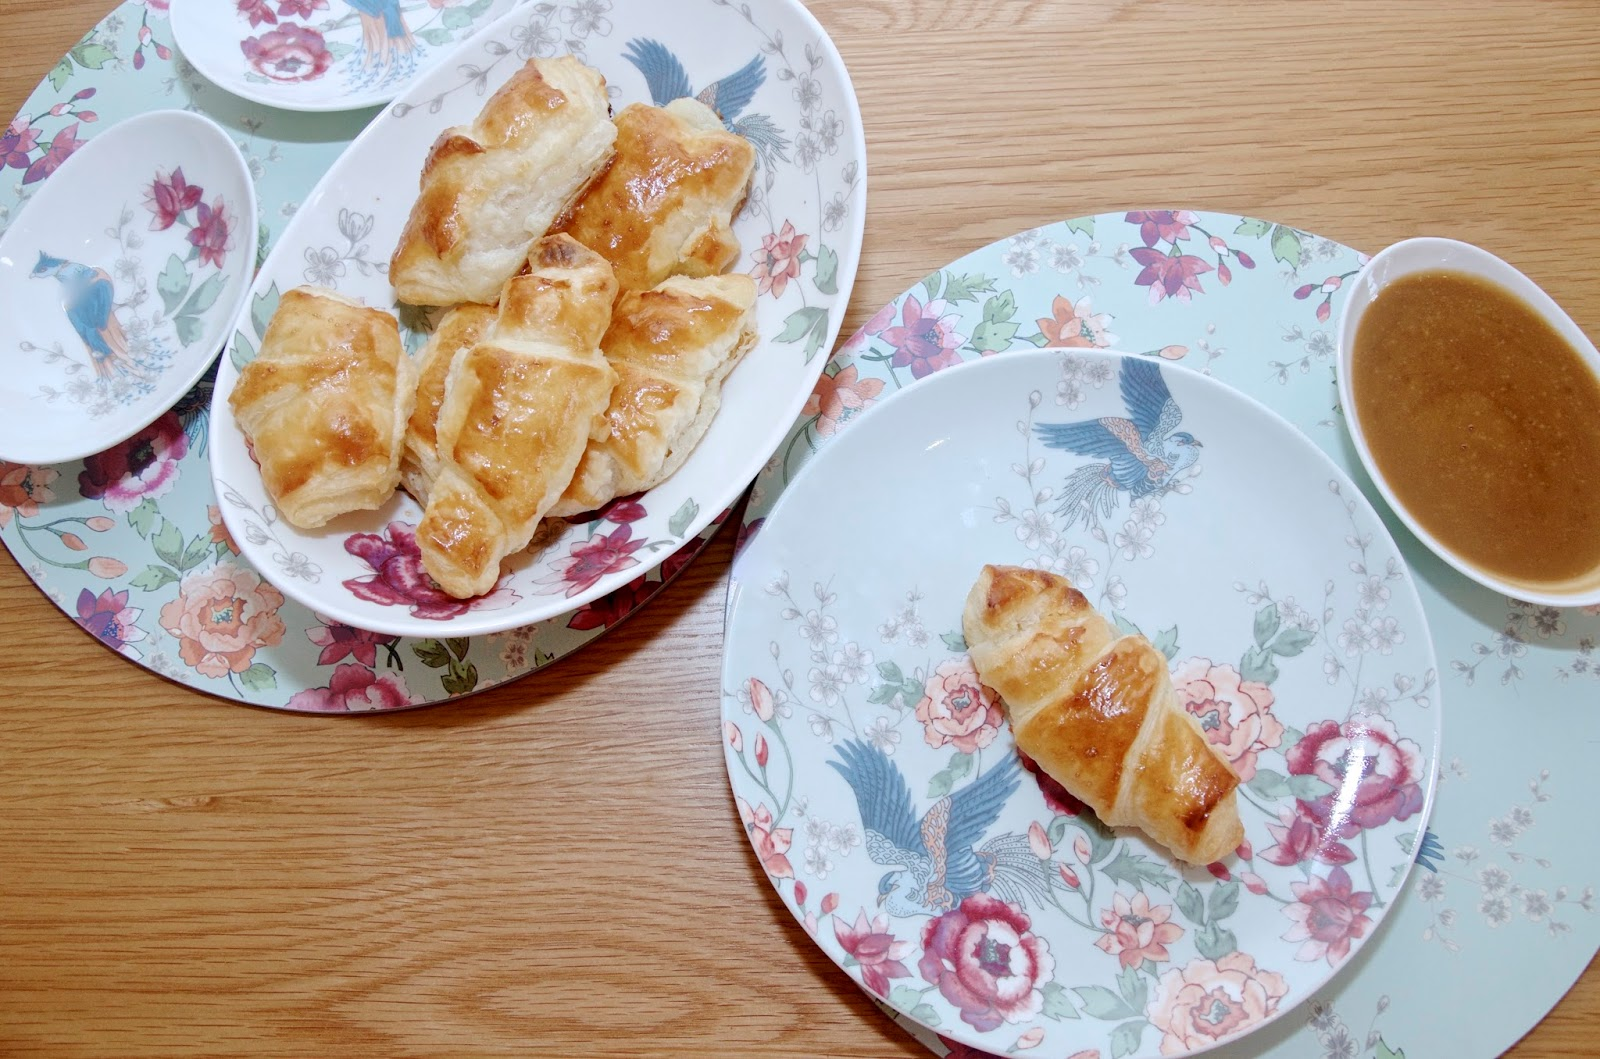 White Chocolate Croissants on floral plates and placemats